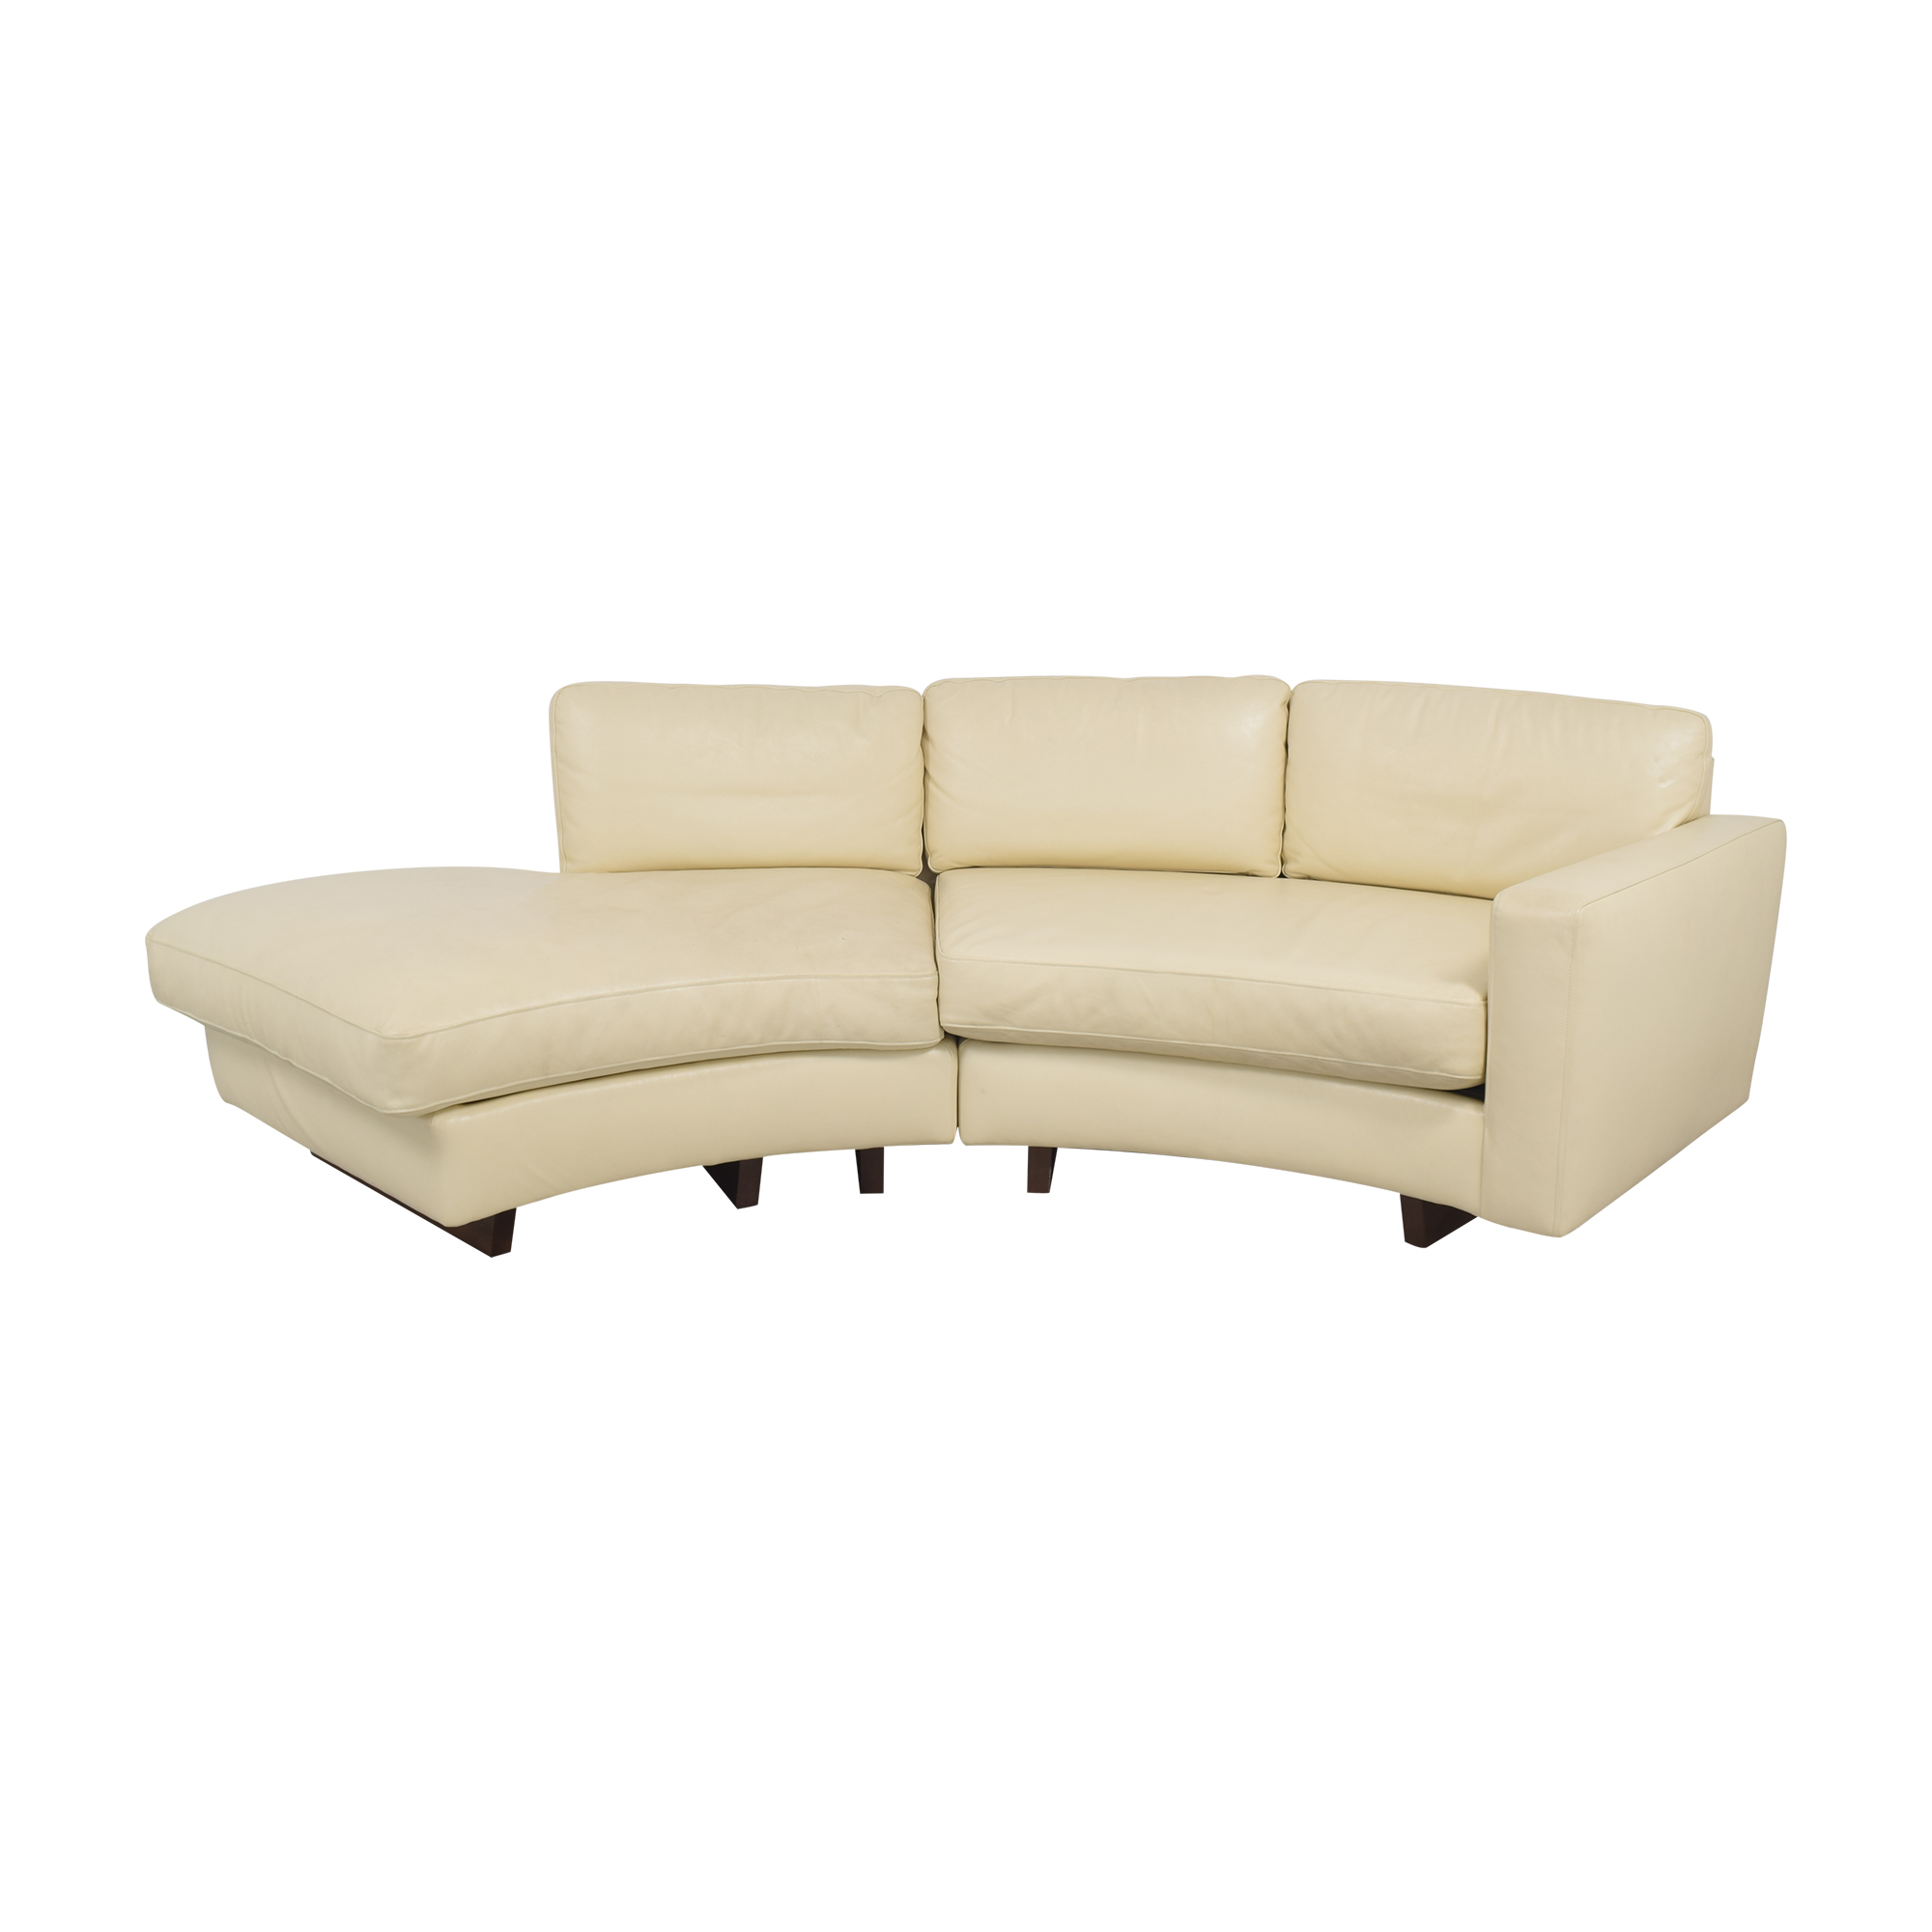 buy Thayer Coggin Thayer Coggin Clip 2 Sectional Sofa online